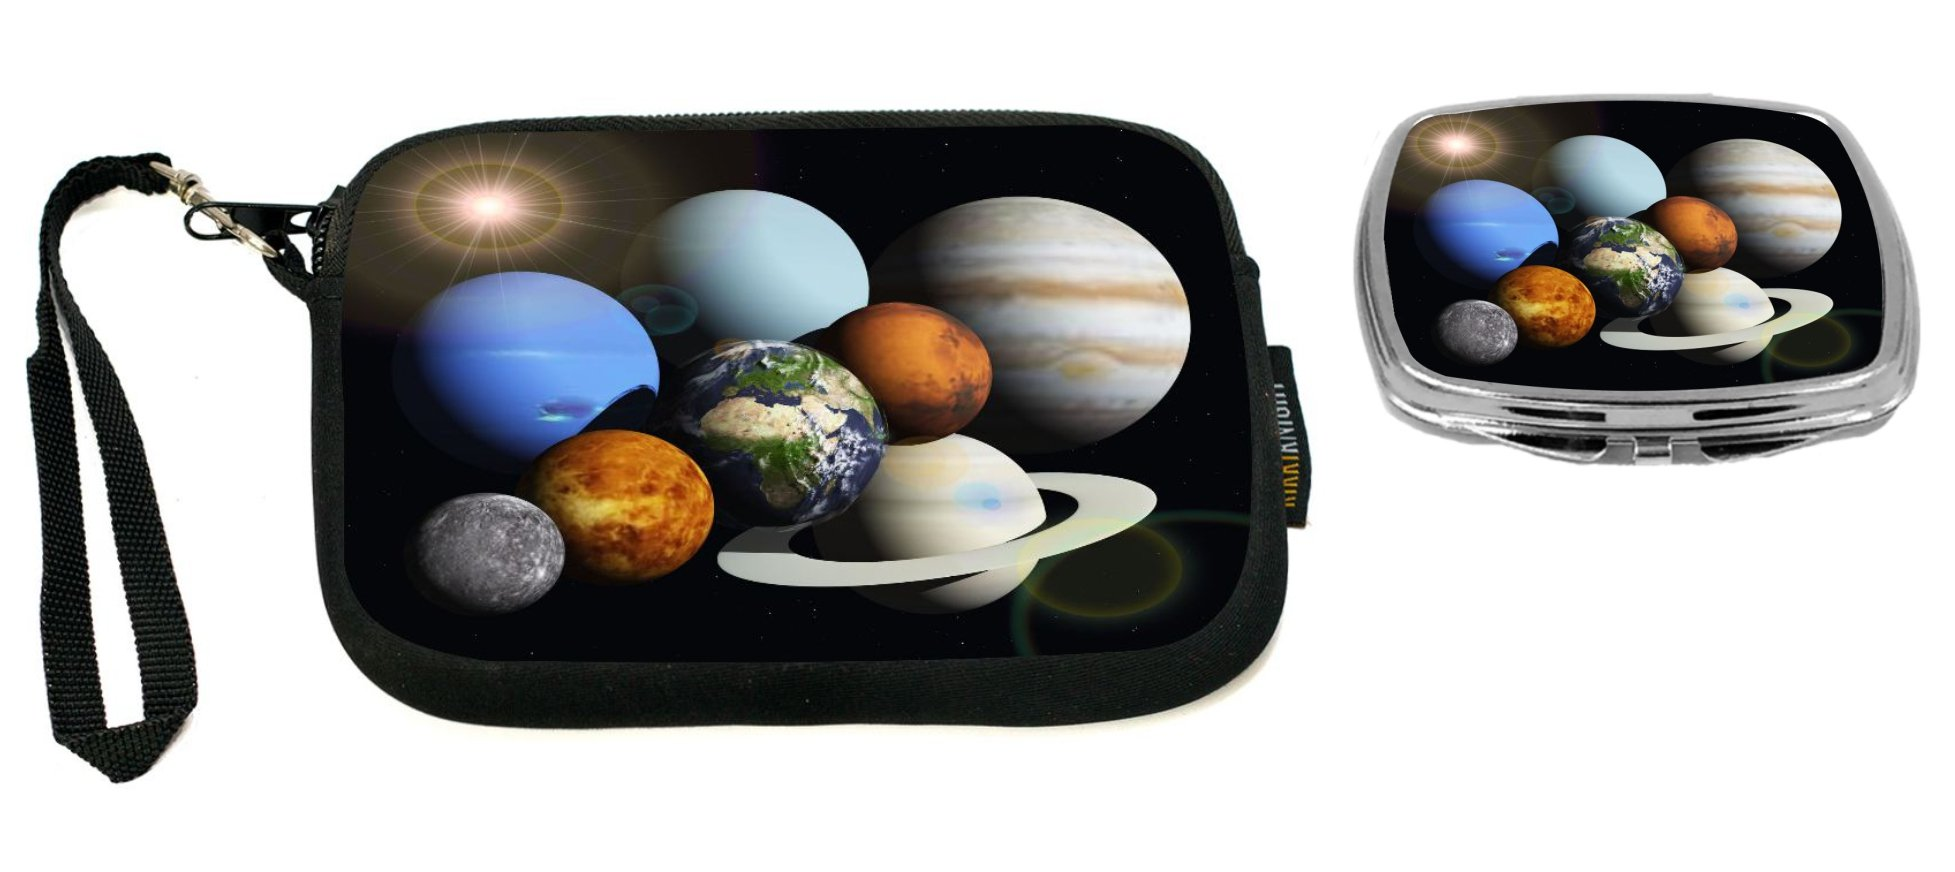 Rikki Knight Solar System Planets Design Neoprene Clutch Wristlet with Matching Square Compact Mirror